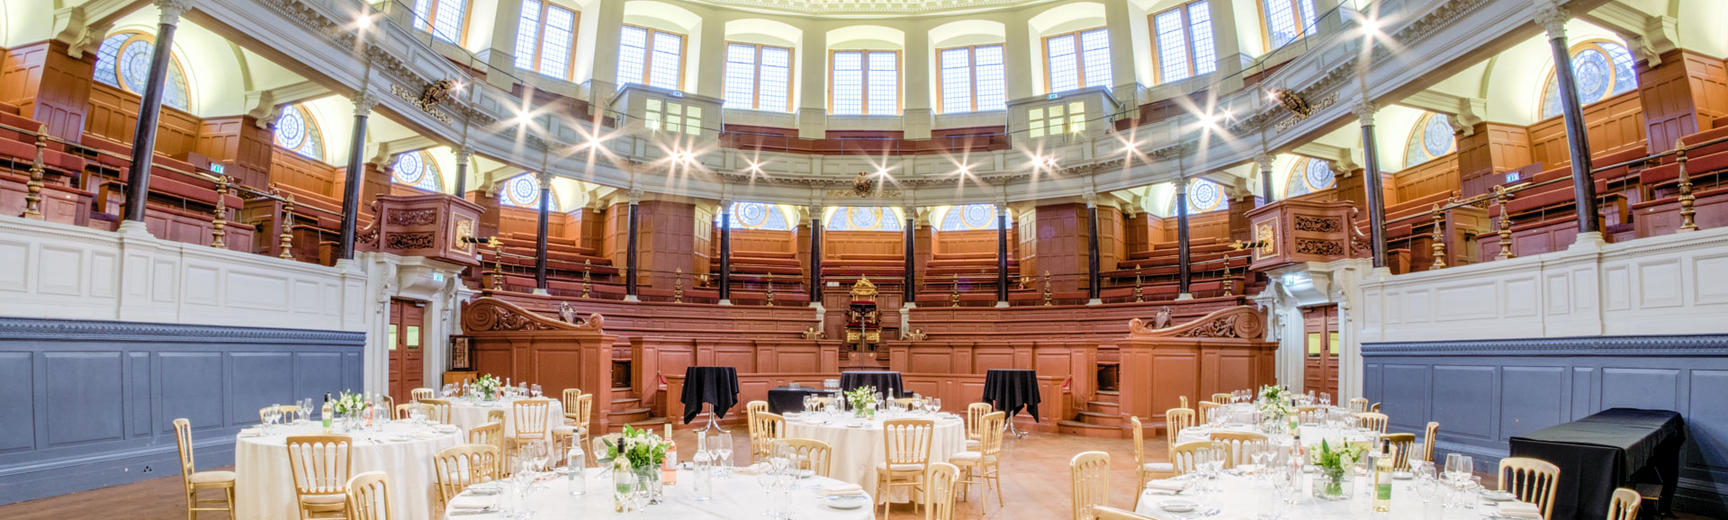 Photo of Sheldonian Theatre with tables and chairs set up for a wedding reception